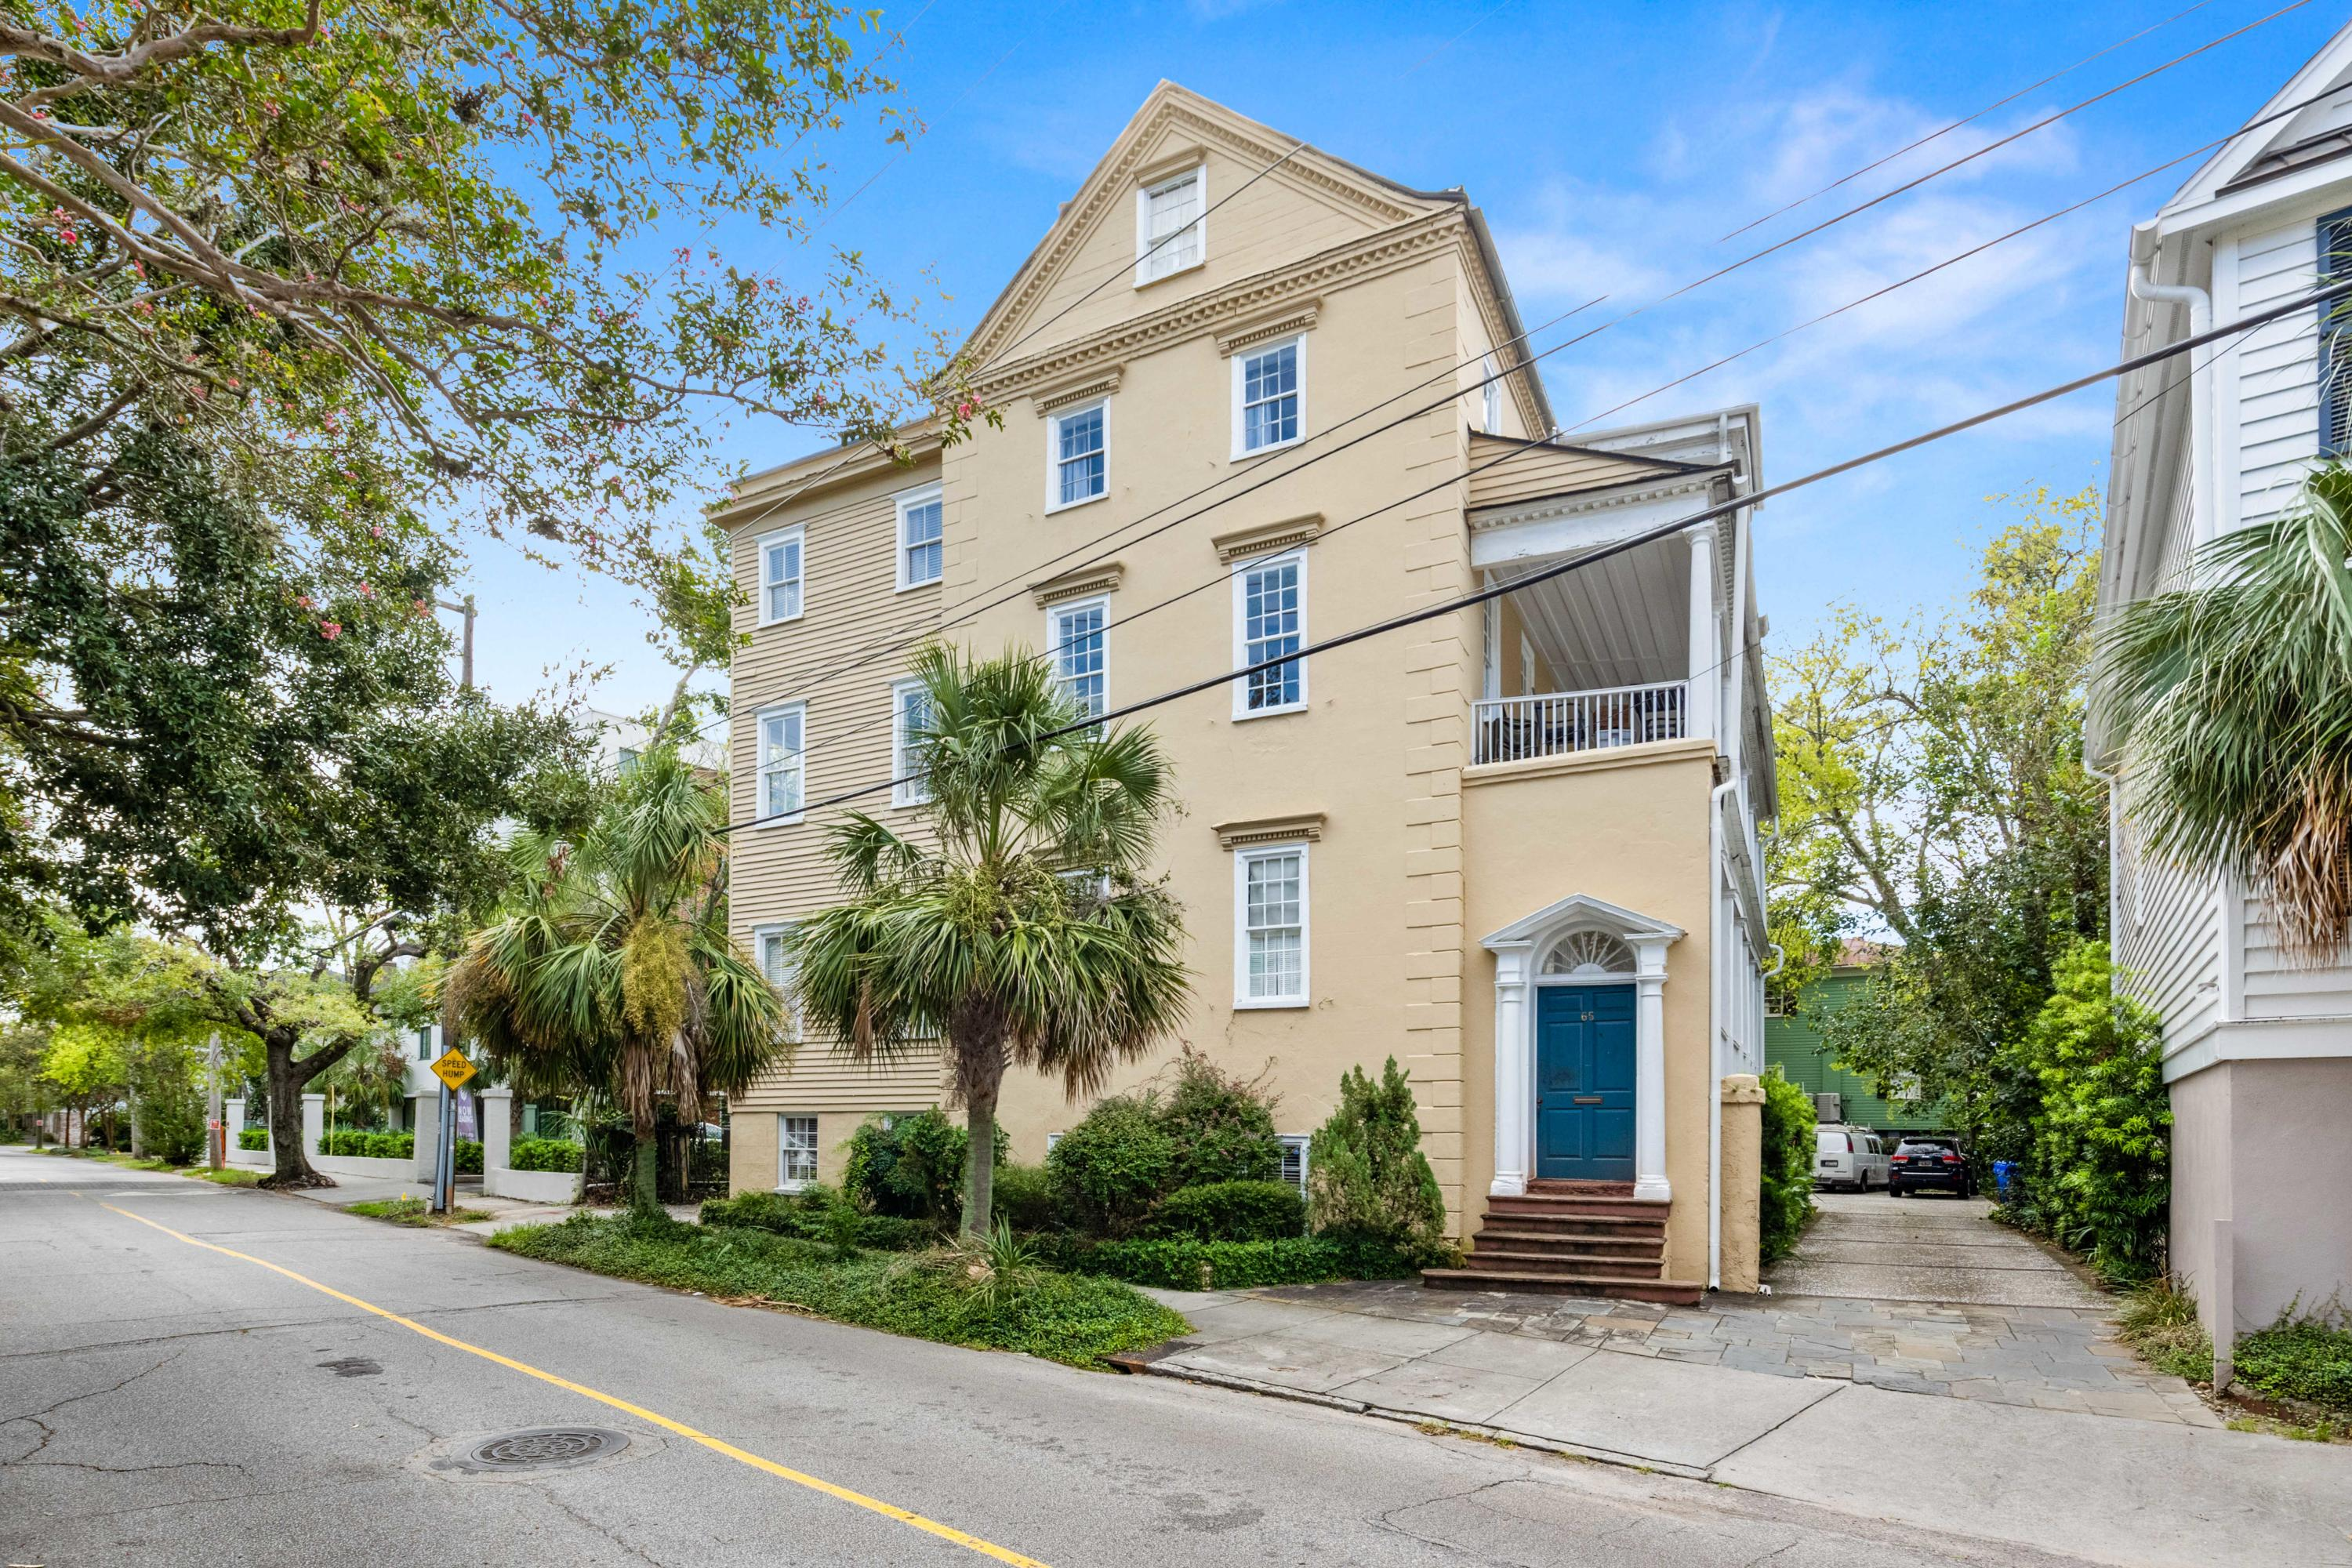 Radcliffeborough Condos For Sale - 65 Vanderhorst, Charleston, SC - 0